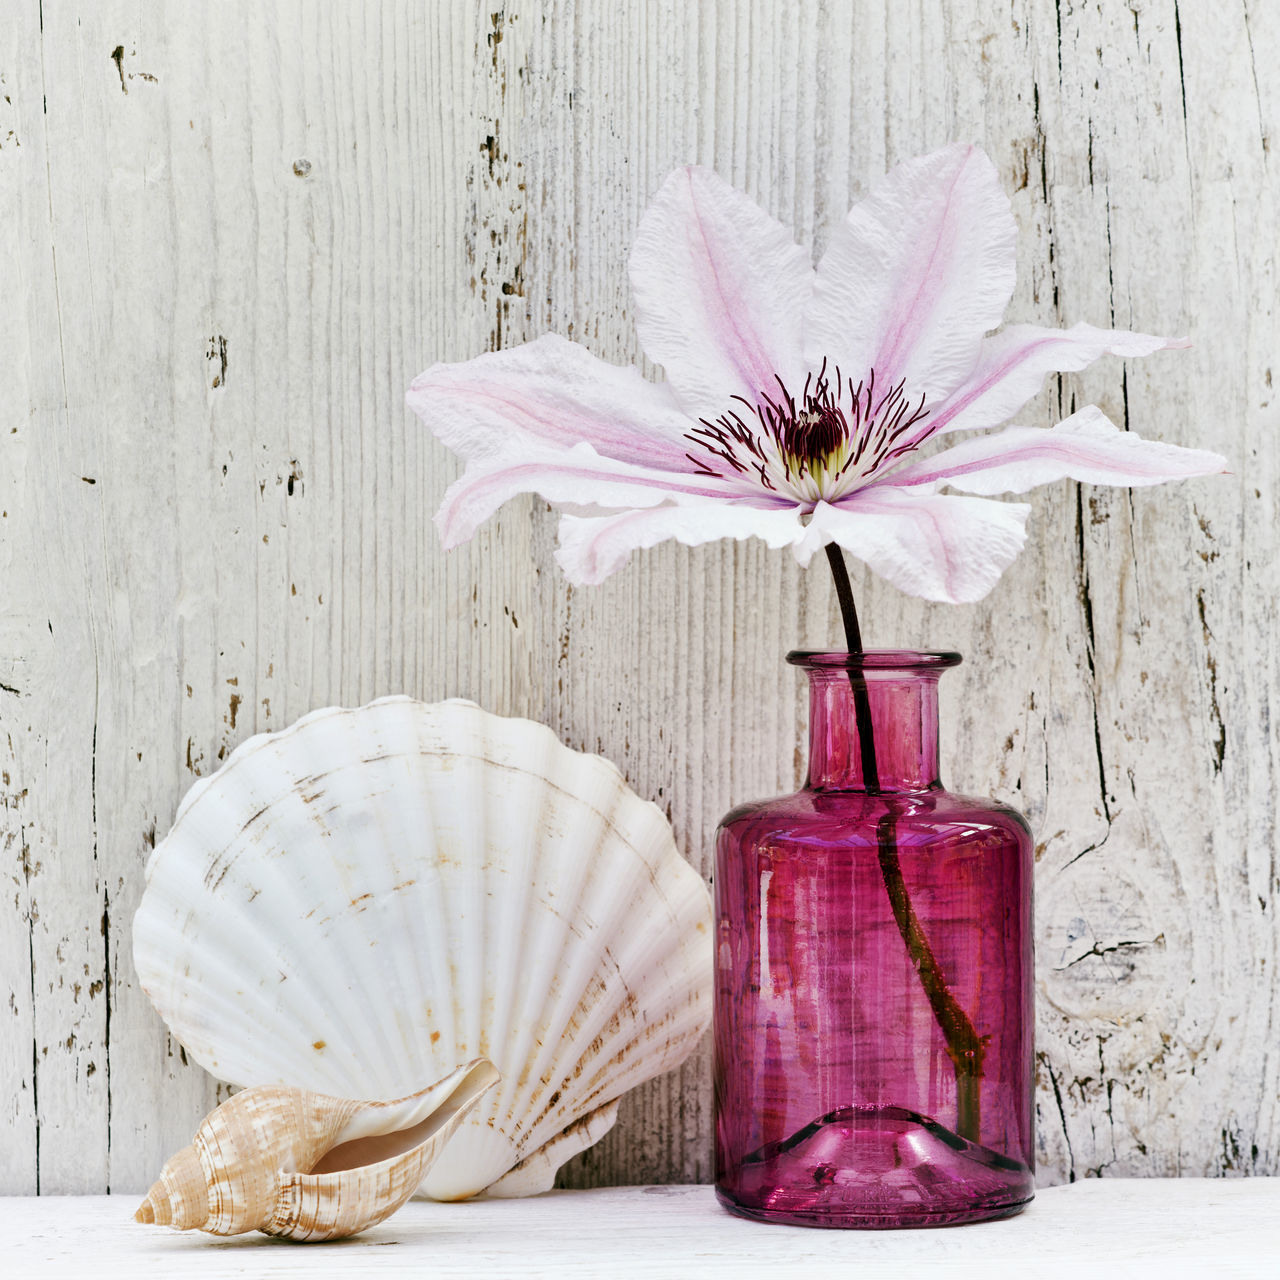 Beachlife Beauty In Nature Clematis Flower Close-up Coastal Day Decoration Flower Flower Arrangement Flower Head Fragility Freshness Growth Nature No People Petal Pink Color Plant Sea Shells 🐚 Simplicity Stem Still Life Vase Wood - Material Wooden Home is Where the Art is